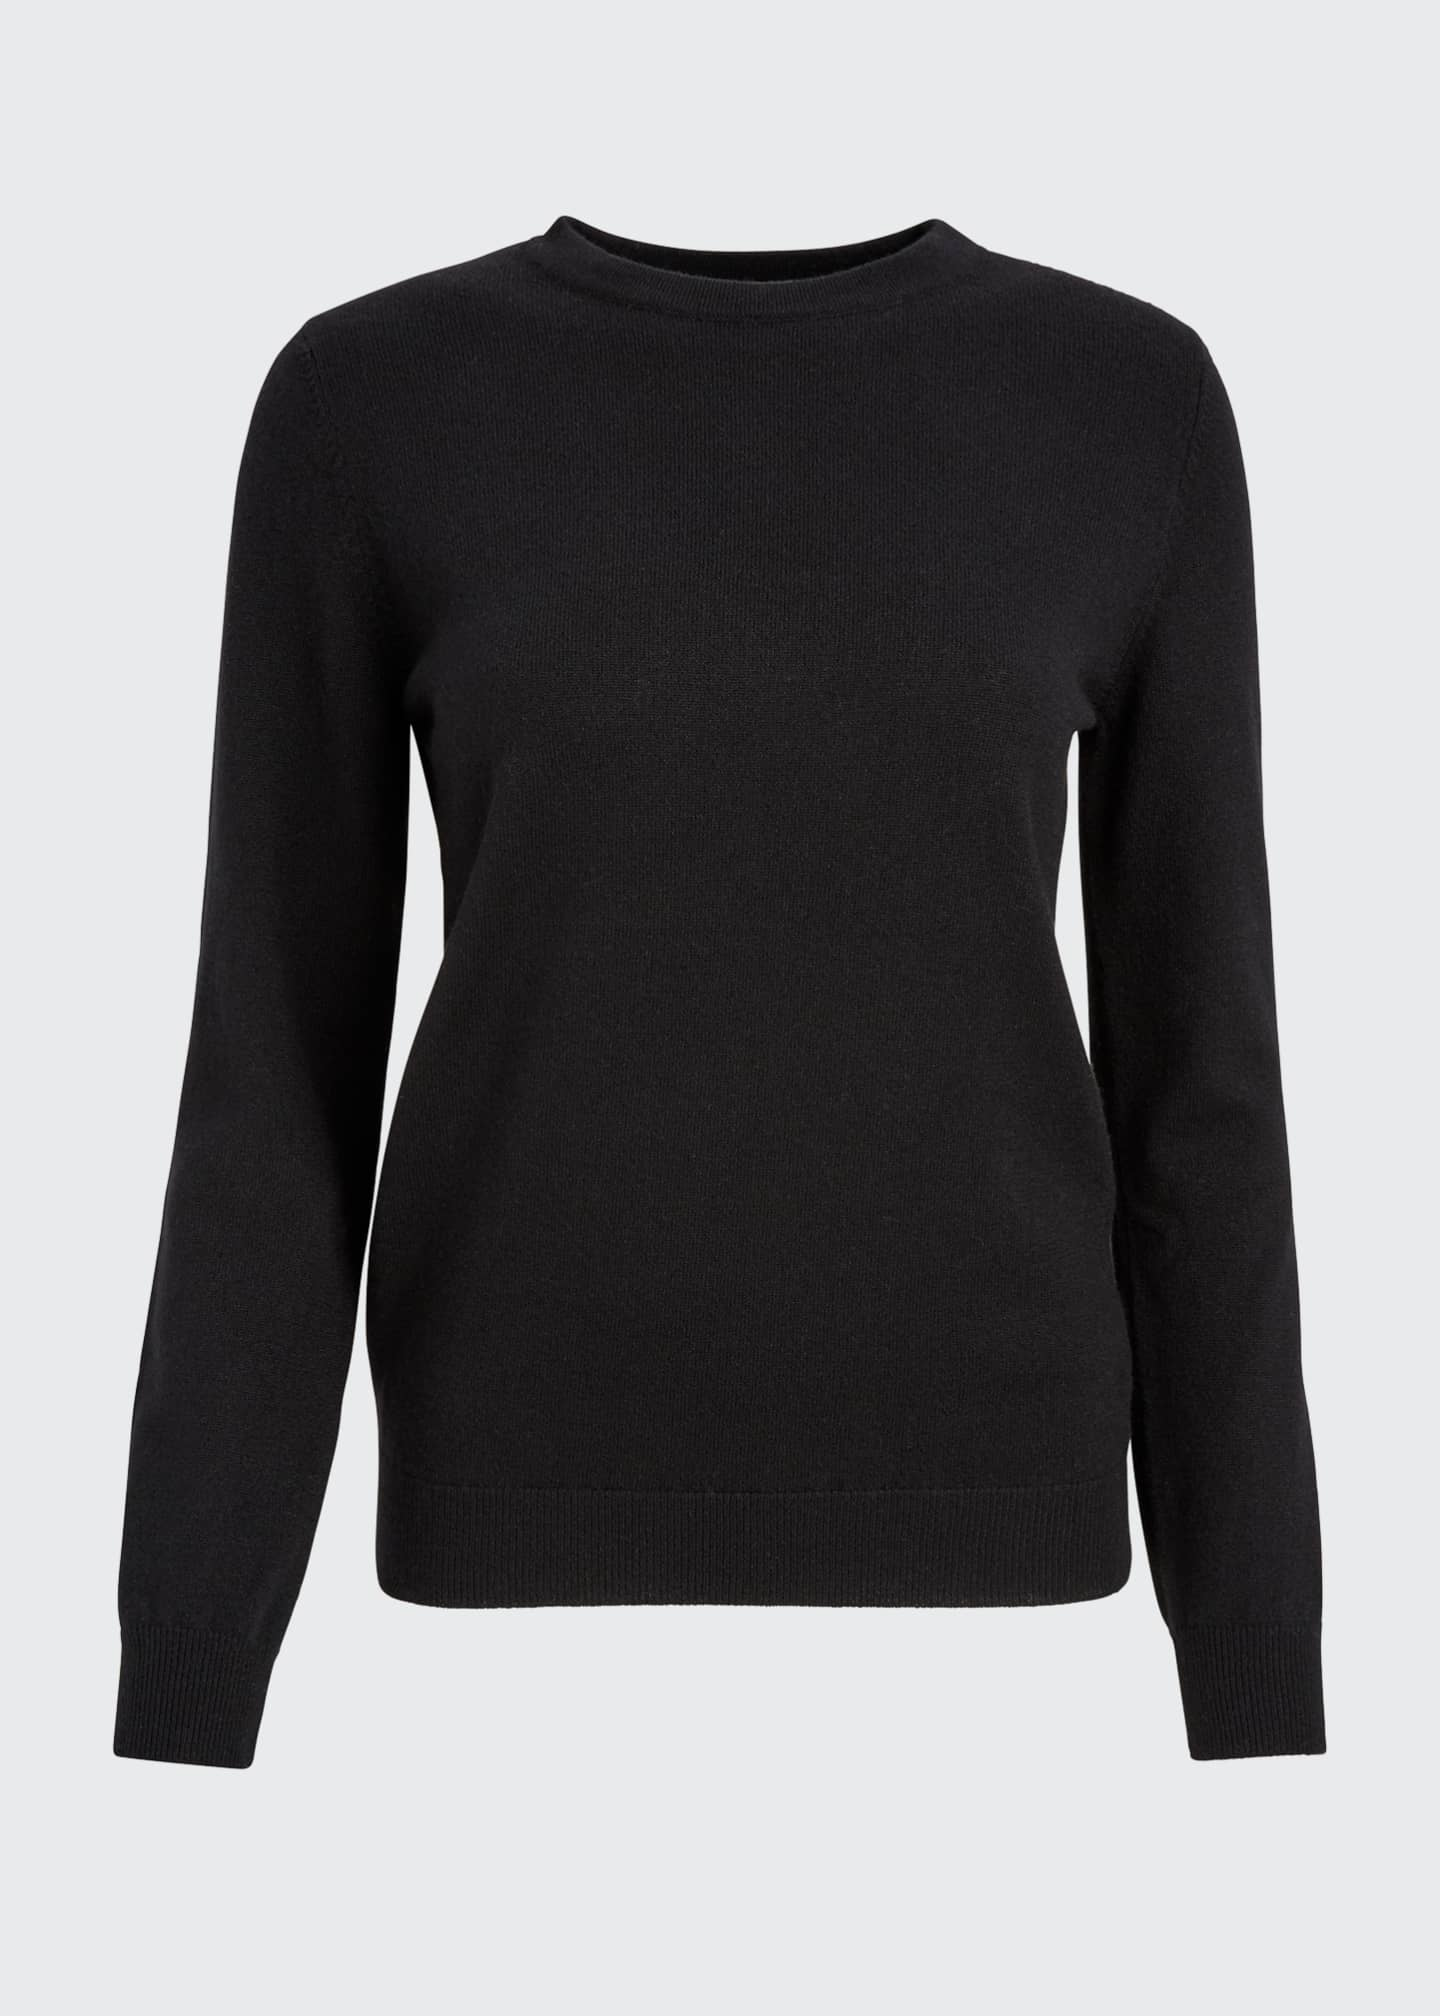 Image 5 of 5: Cashmere Basic Crewneck Sweater